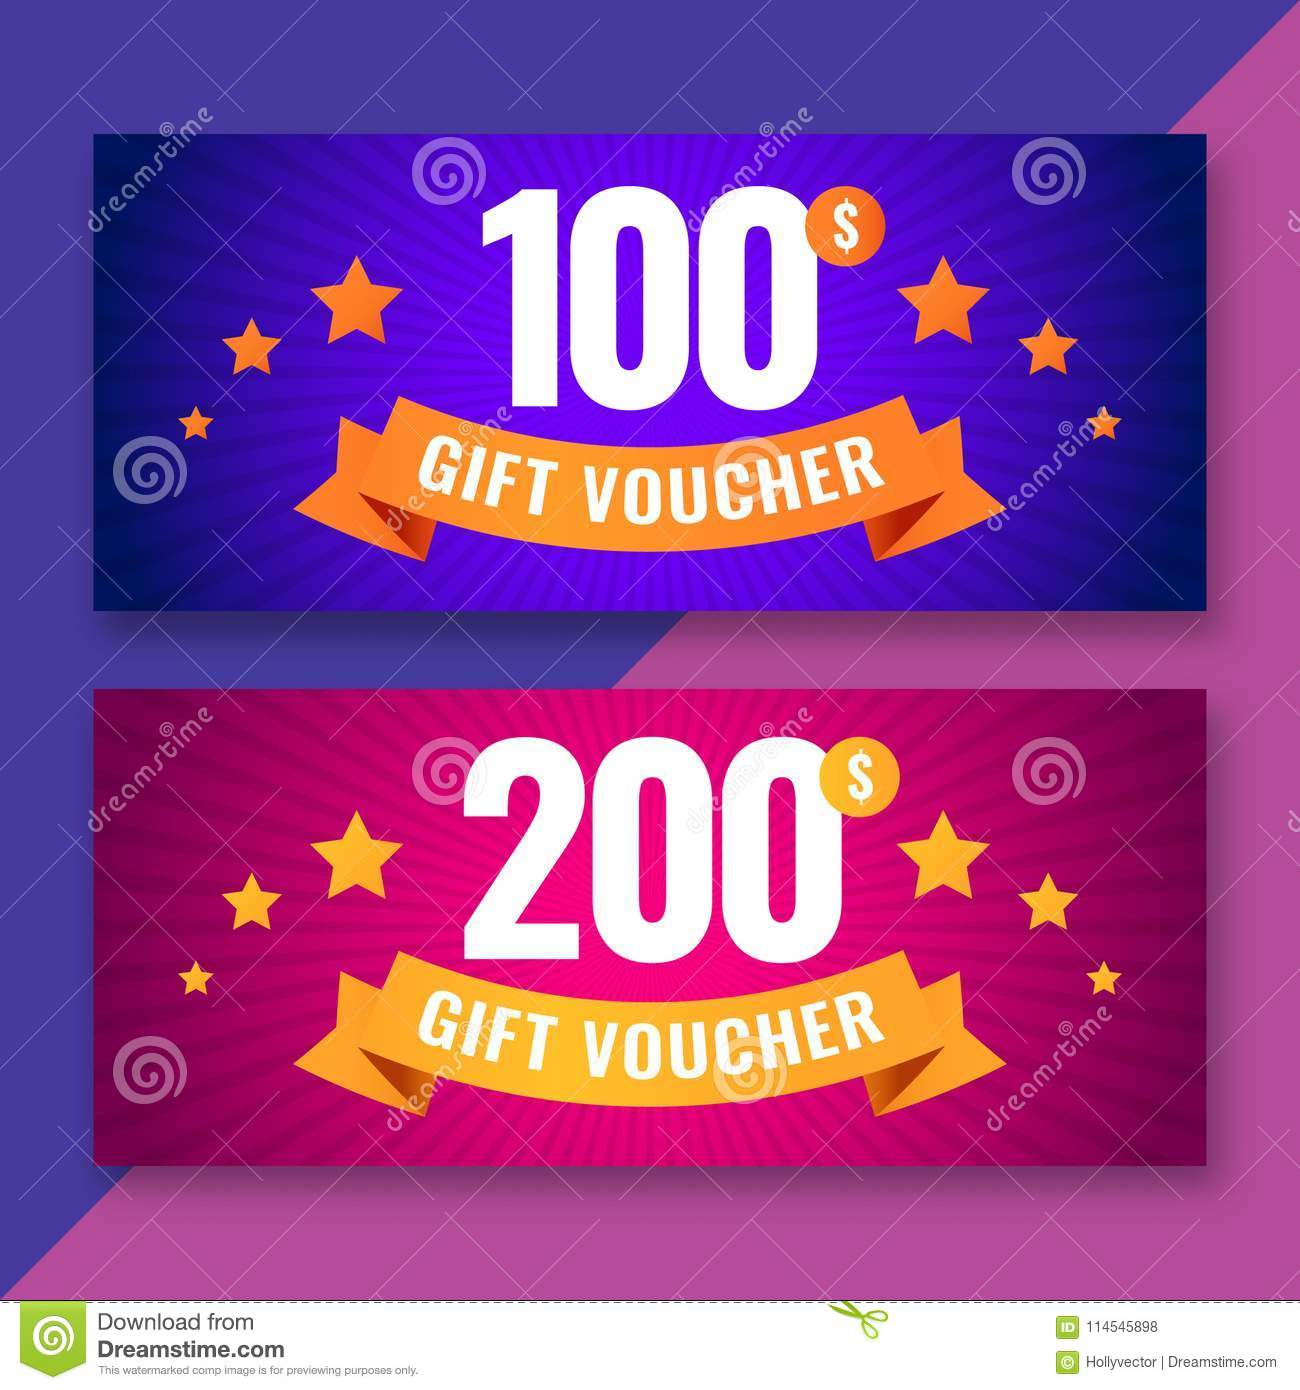 gift voucher template 100 and 200 dollars coupons stock vector